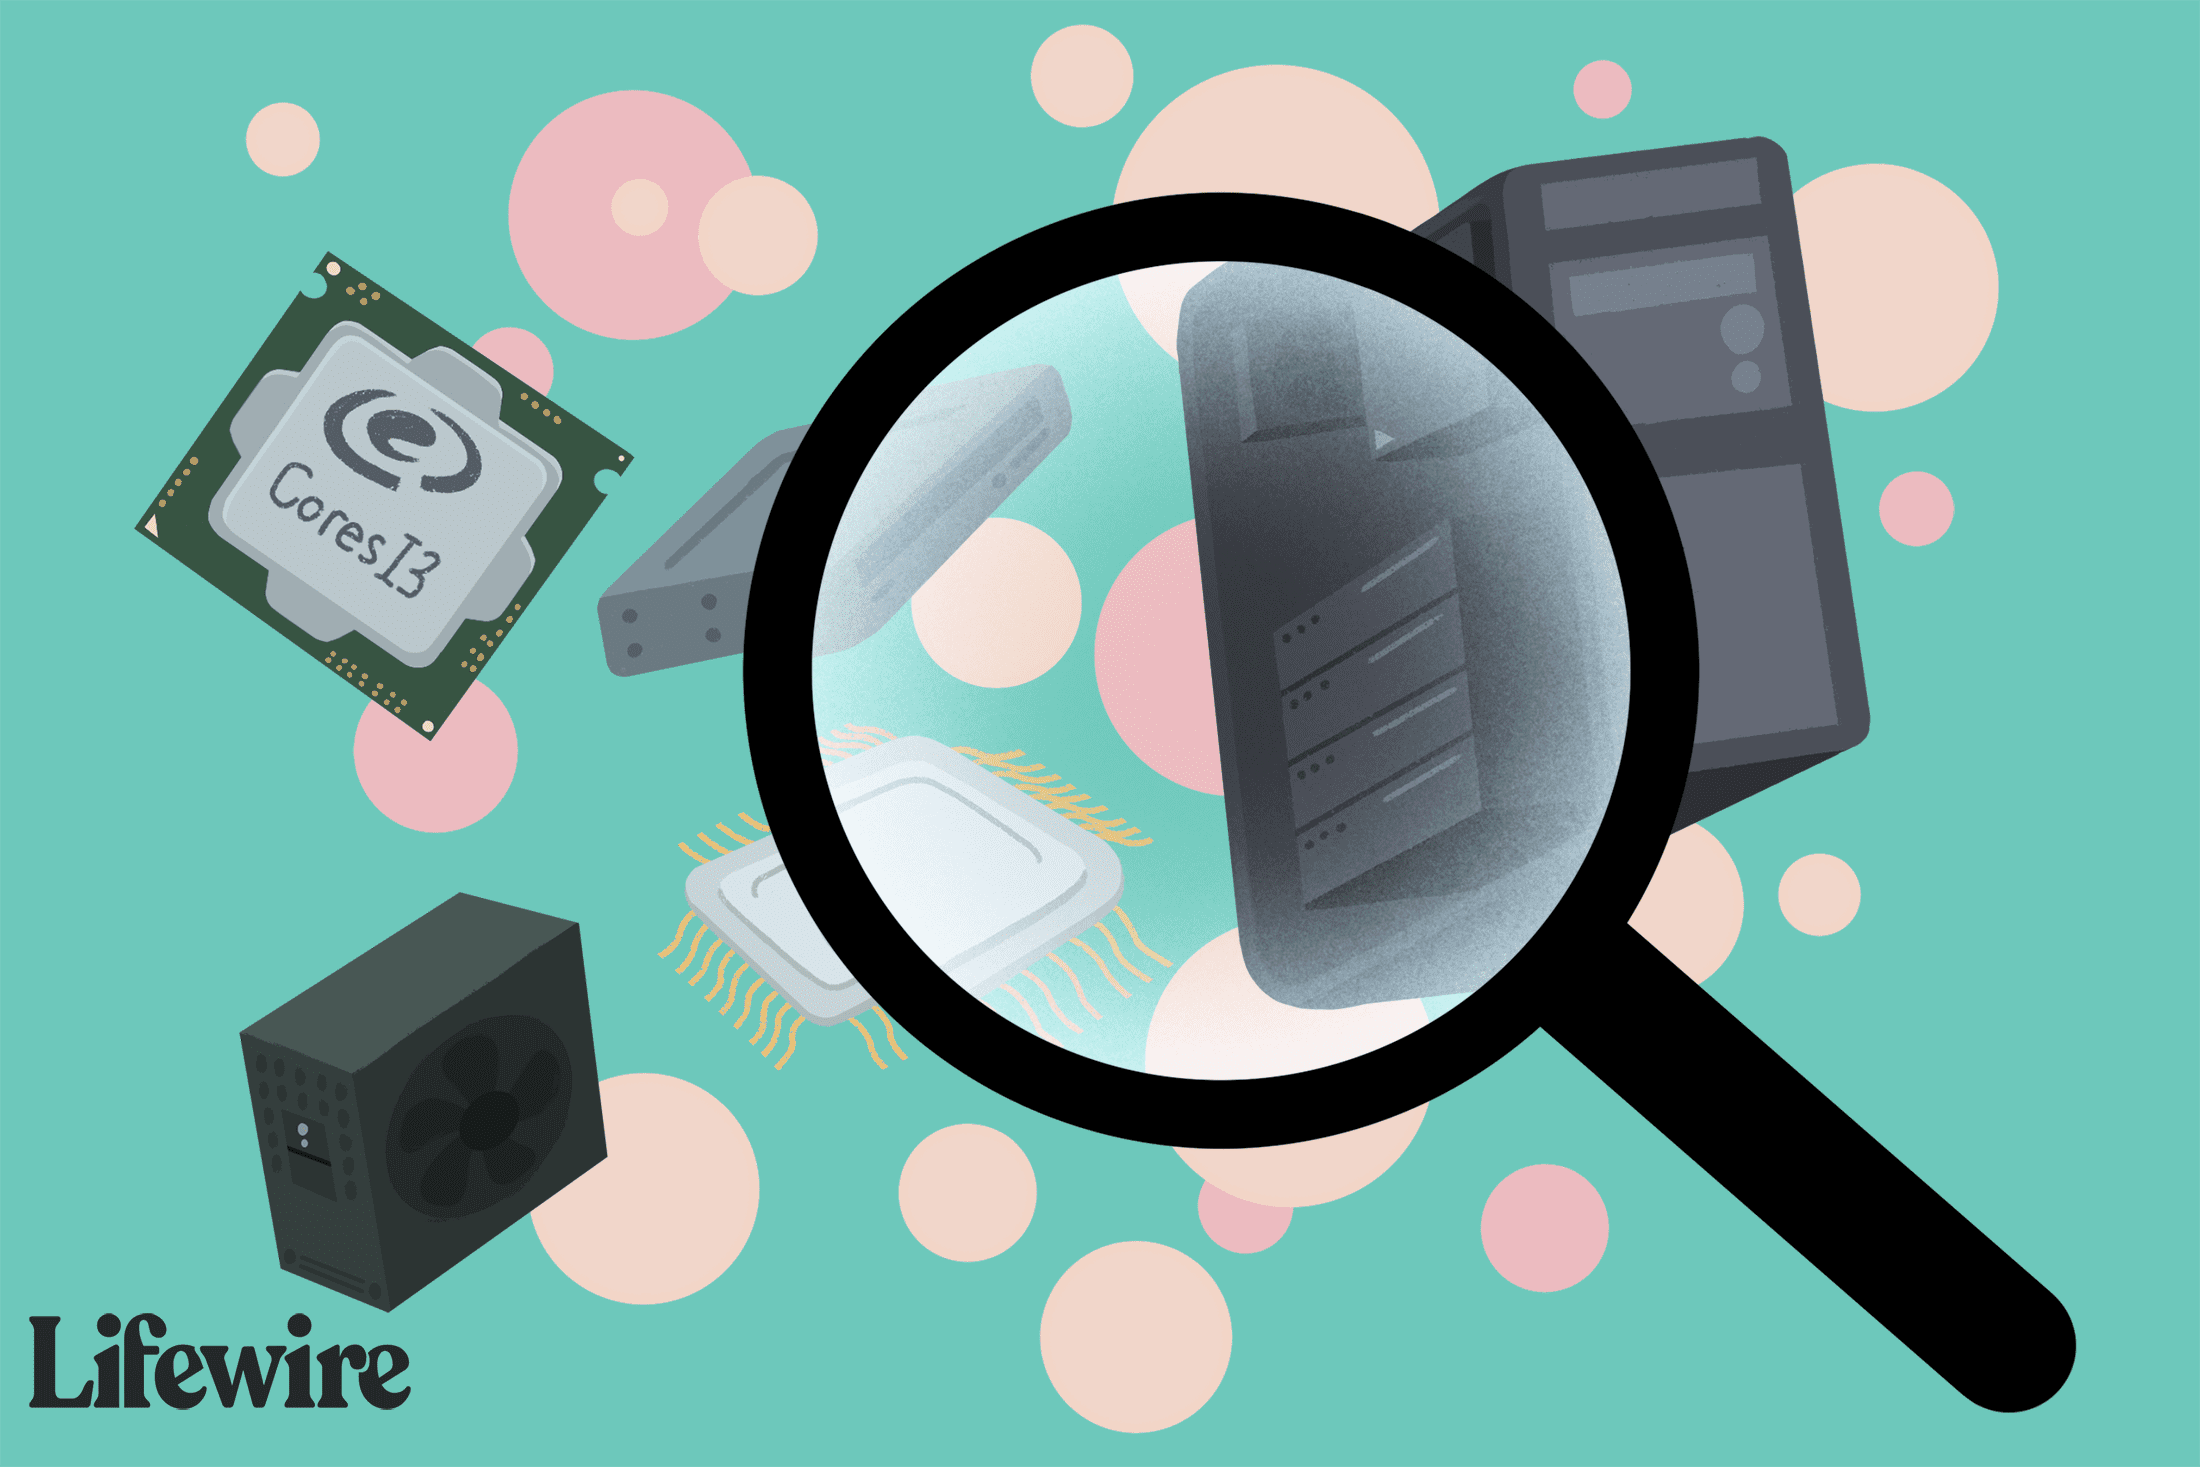 Magnifying glass imposed on computers and technical components